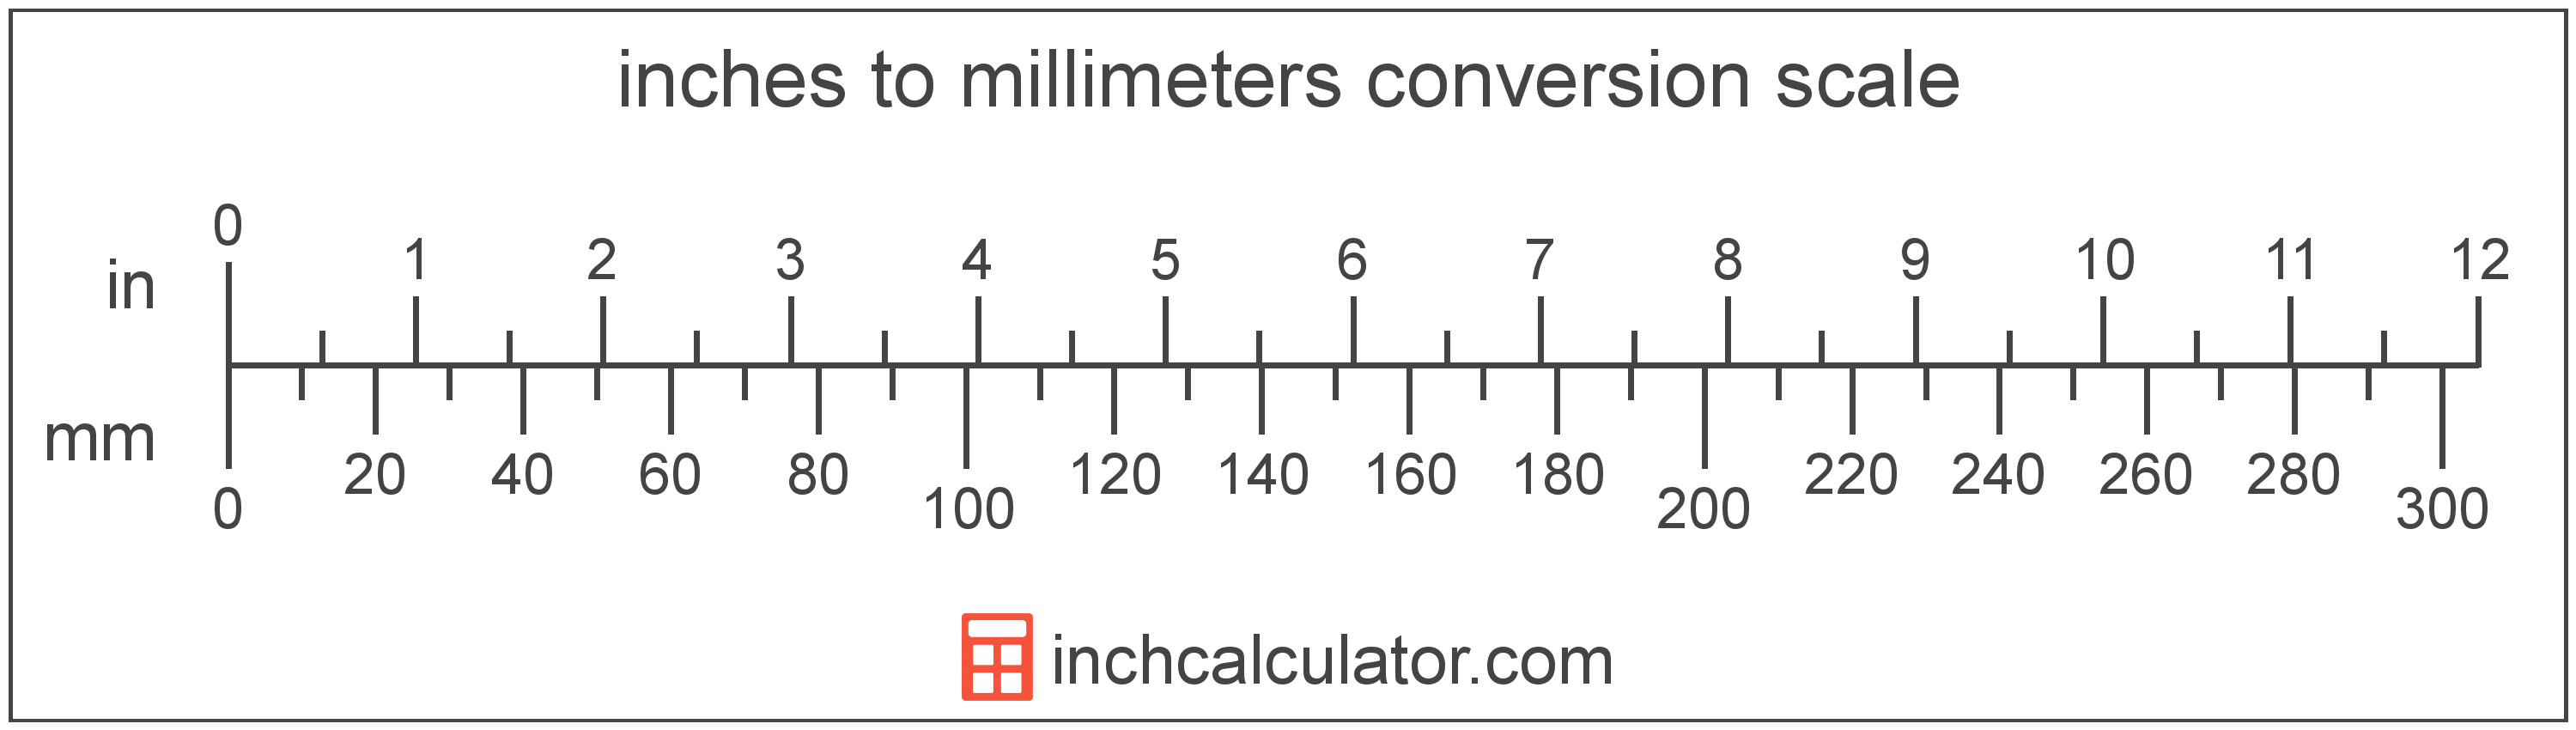 conversion scale showing inches and equivalent millimeters length values